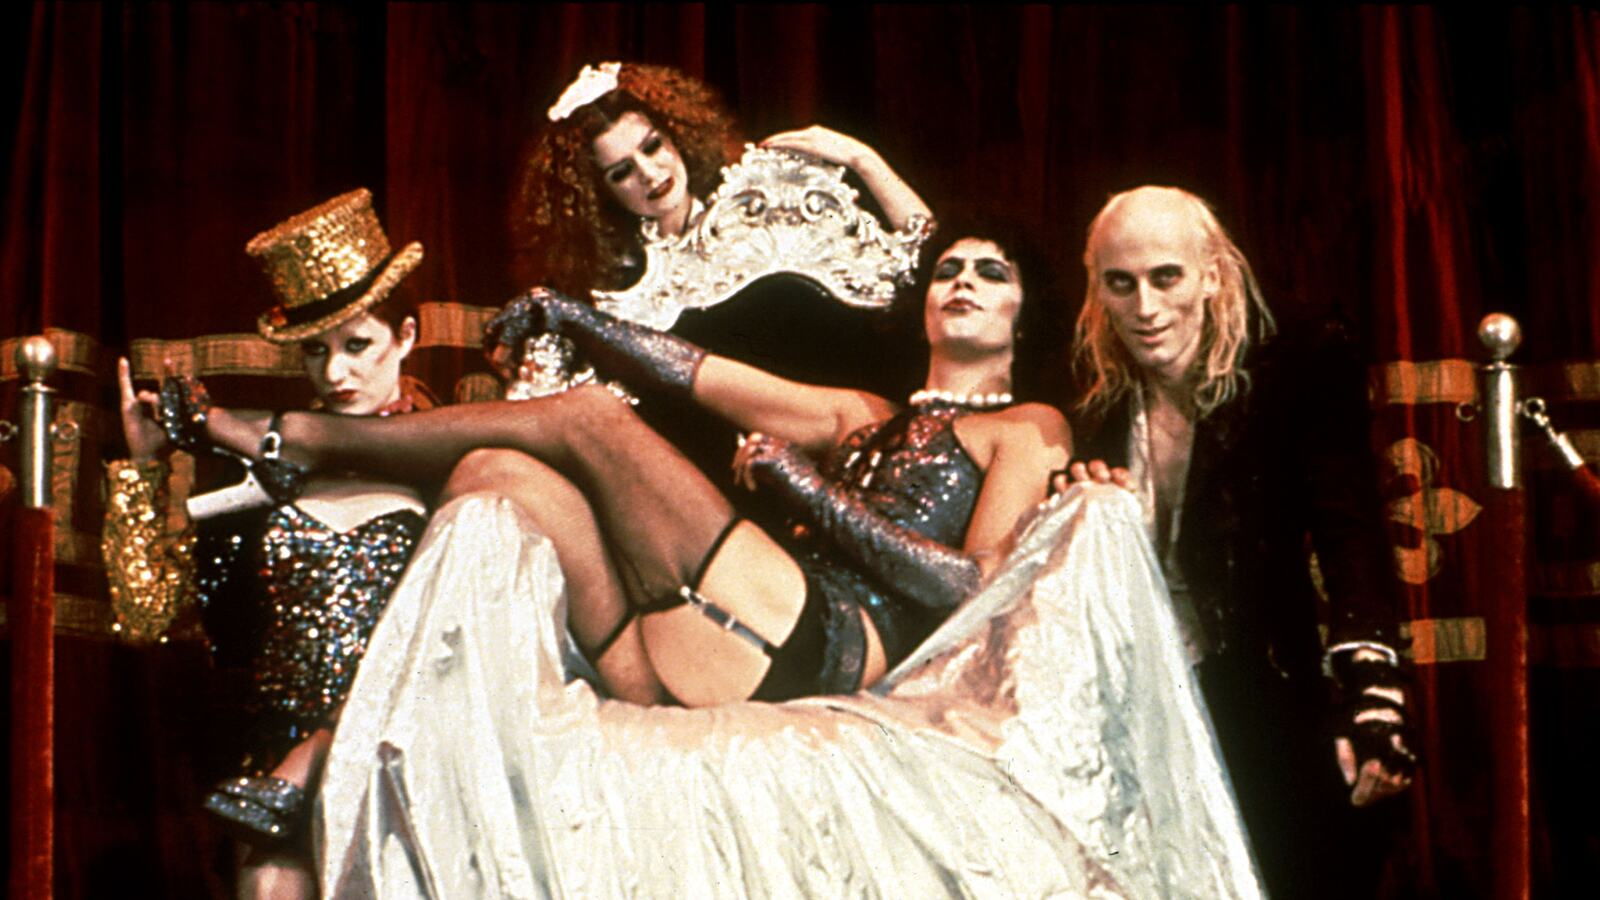 Film still from Rocky Horror Picture Show (1975)